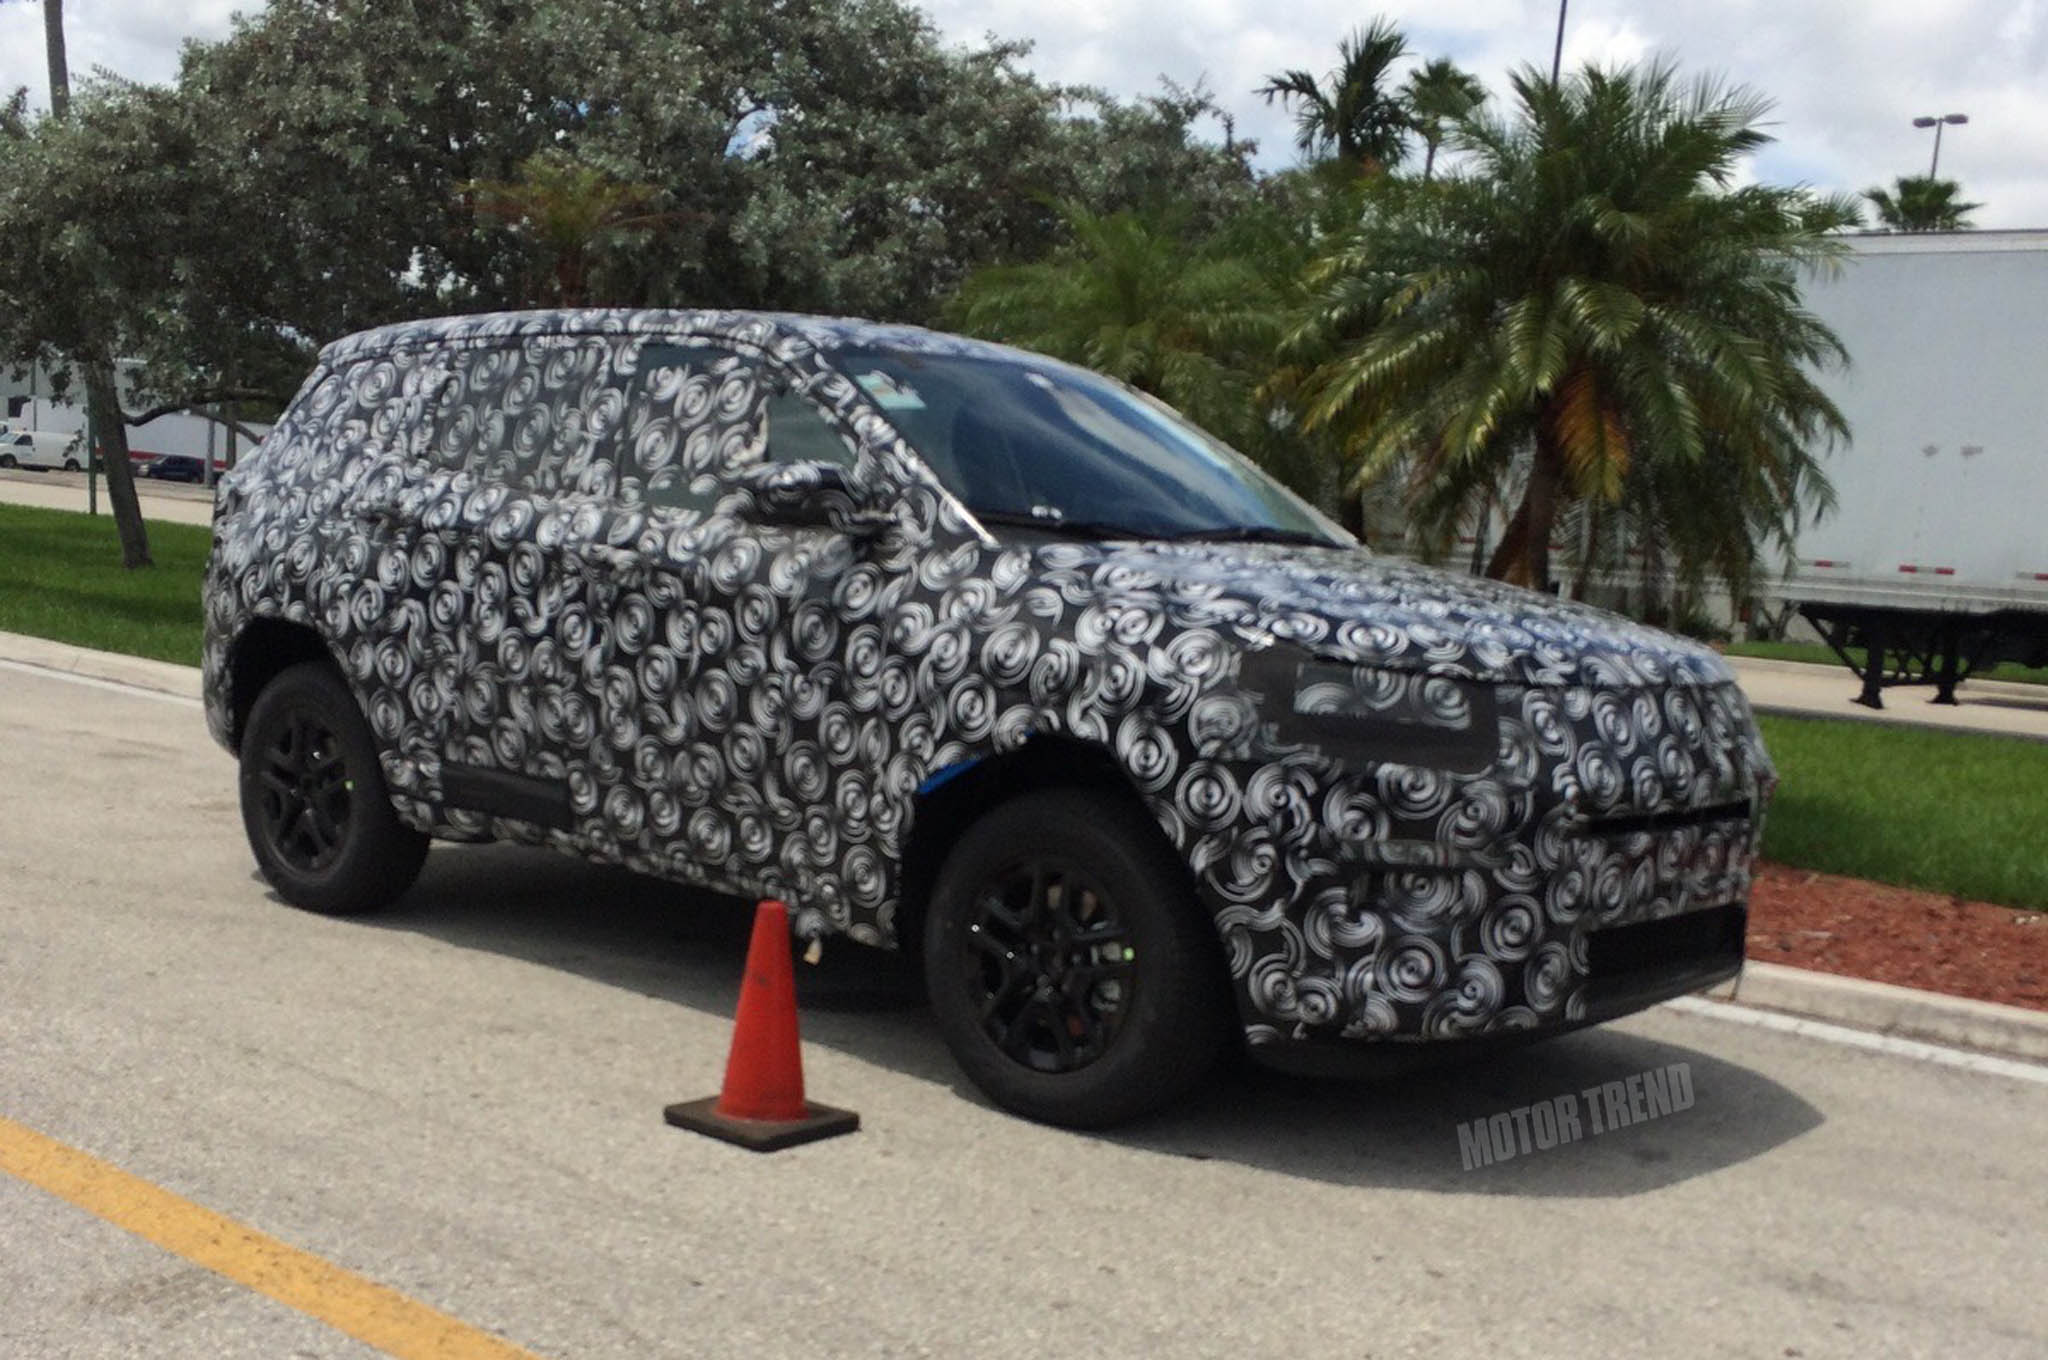 Spied: Mystery Crossover Prototype Caught in Miami